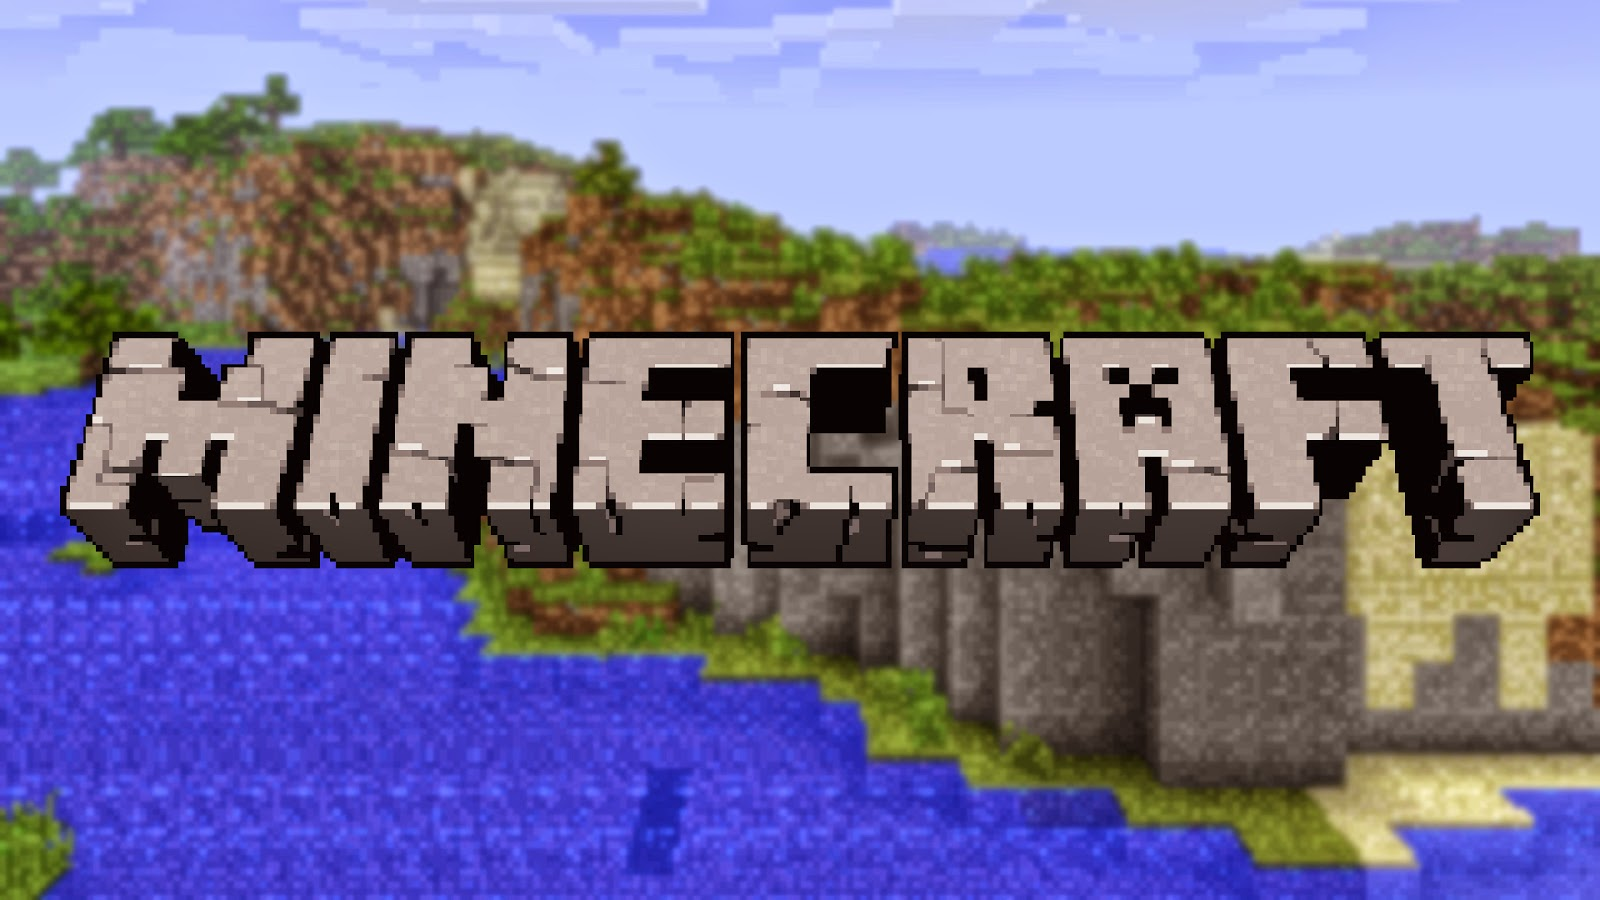 FACT: Minecraft is banned in Turkey